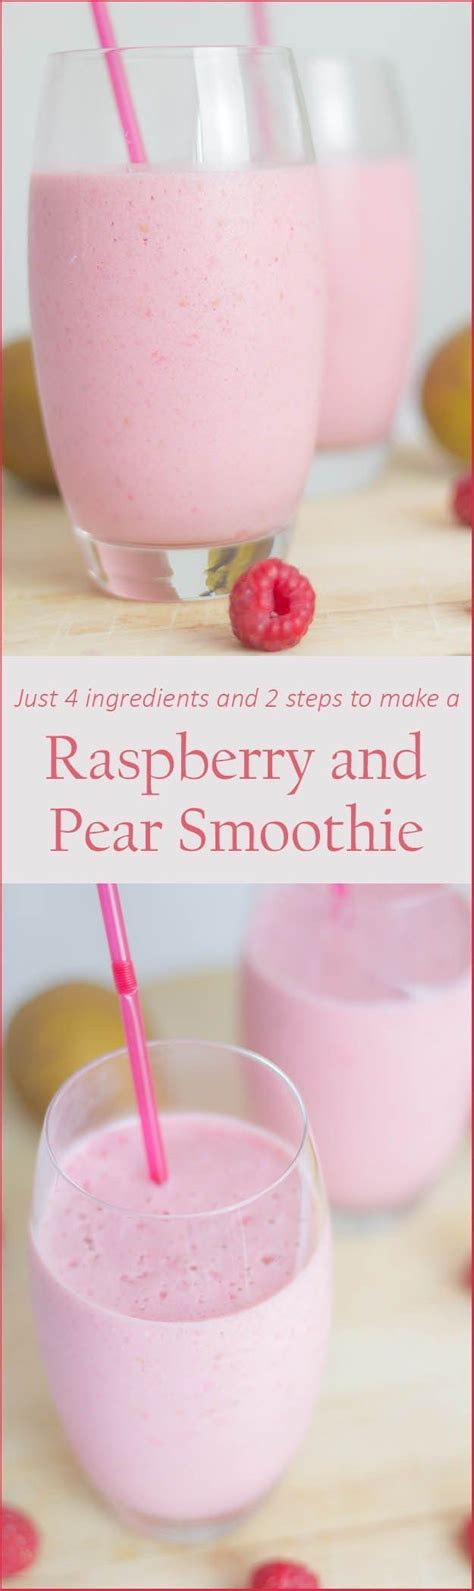 Smoothie King Cleanse And Detox by 100 Smoothie King Recipes On Juice Plus Detox